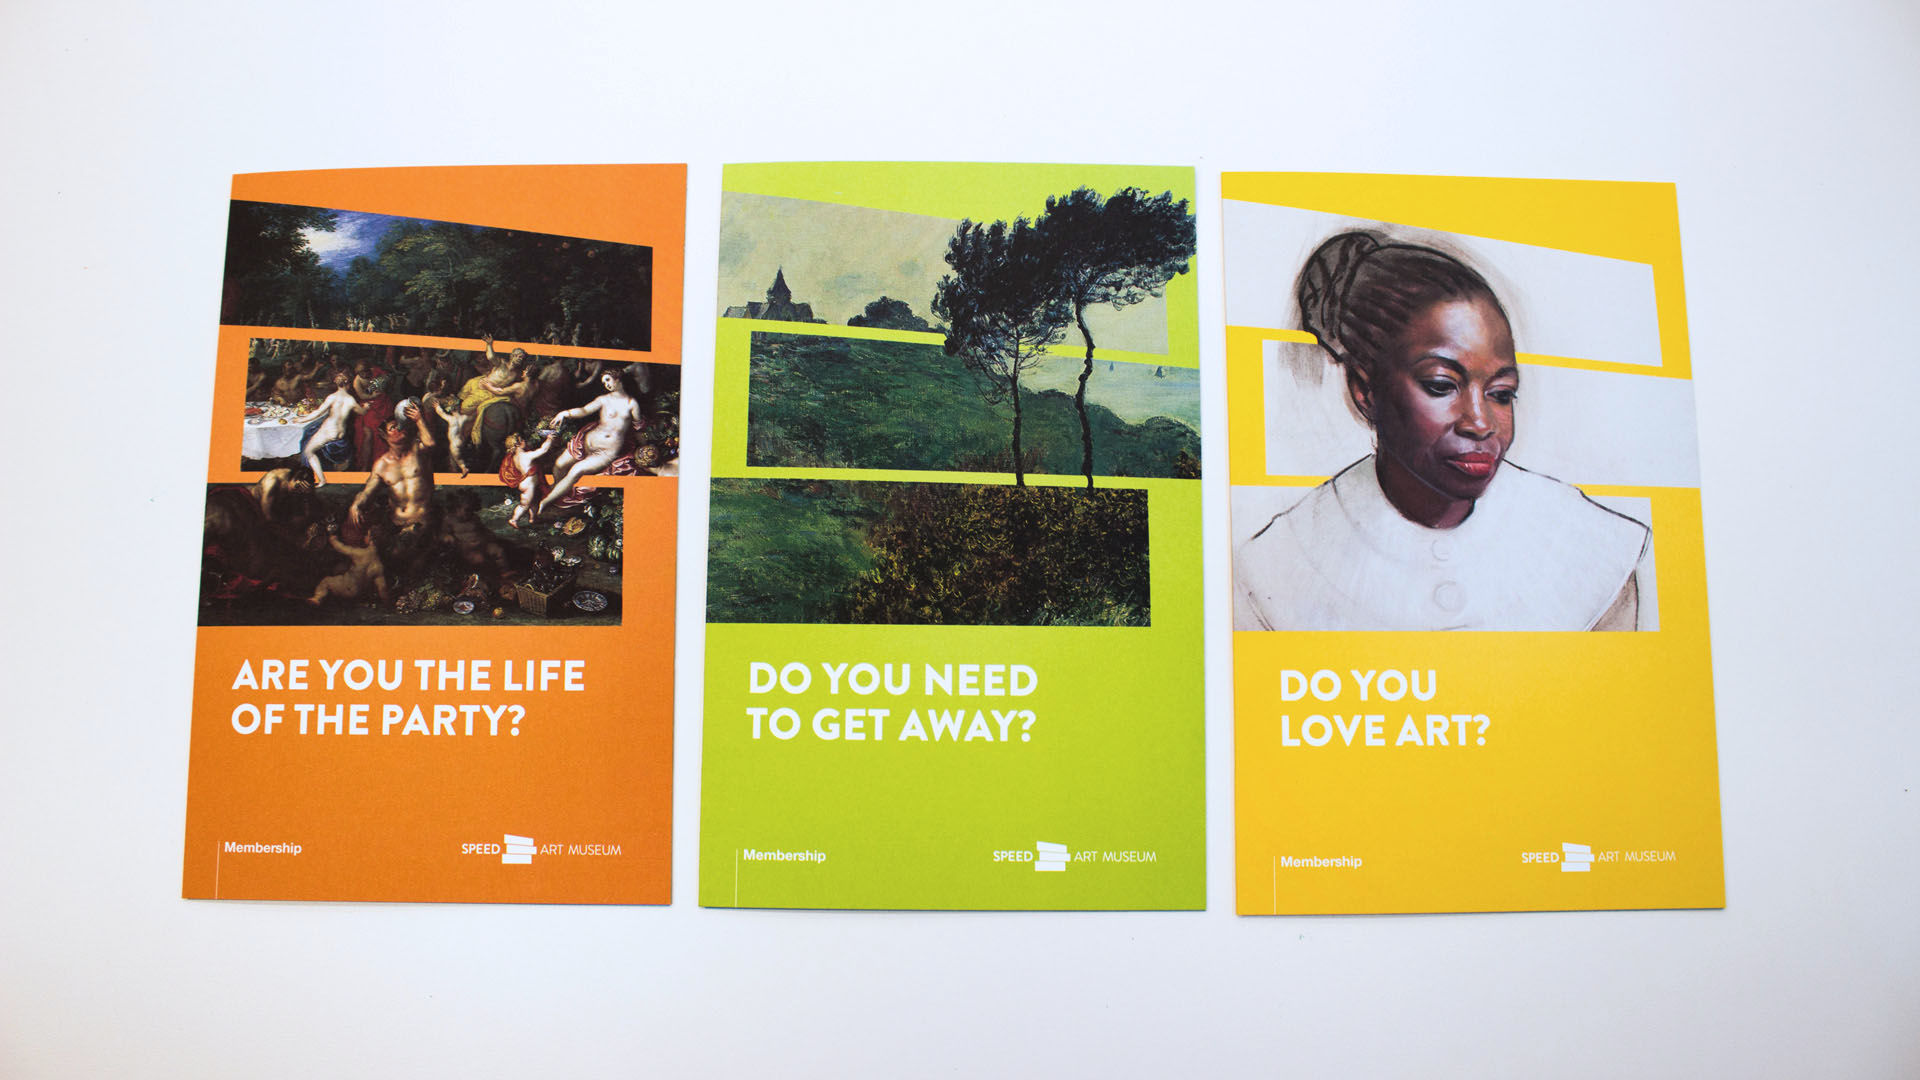 The main brochure for Speed membership asks relatable questions to help people see that they have a place at the museum, no matter who they are.